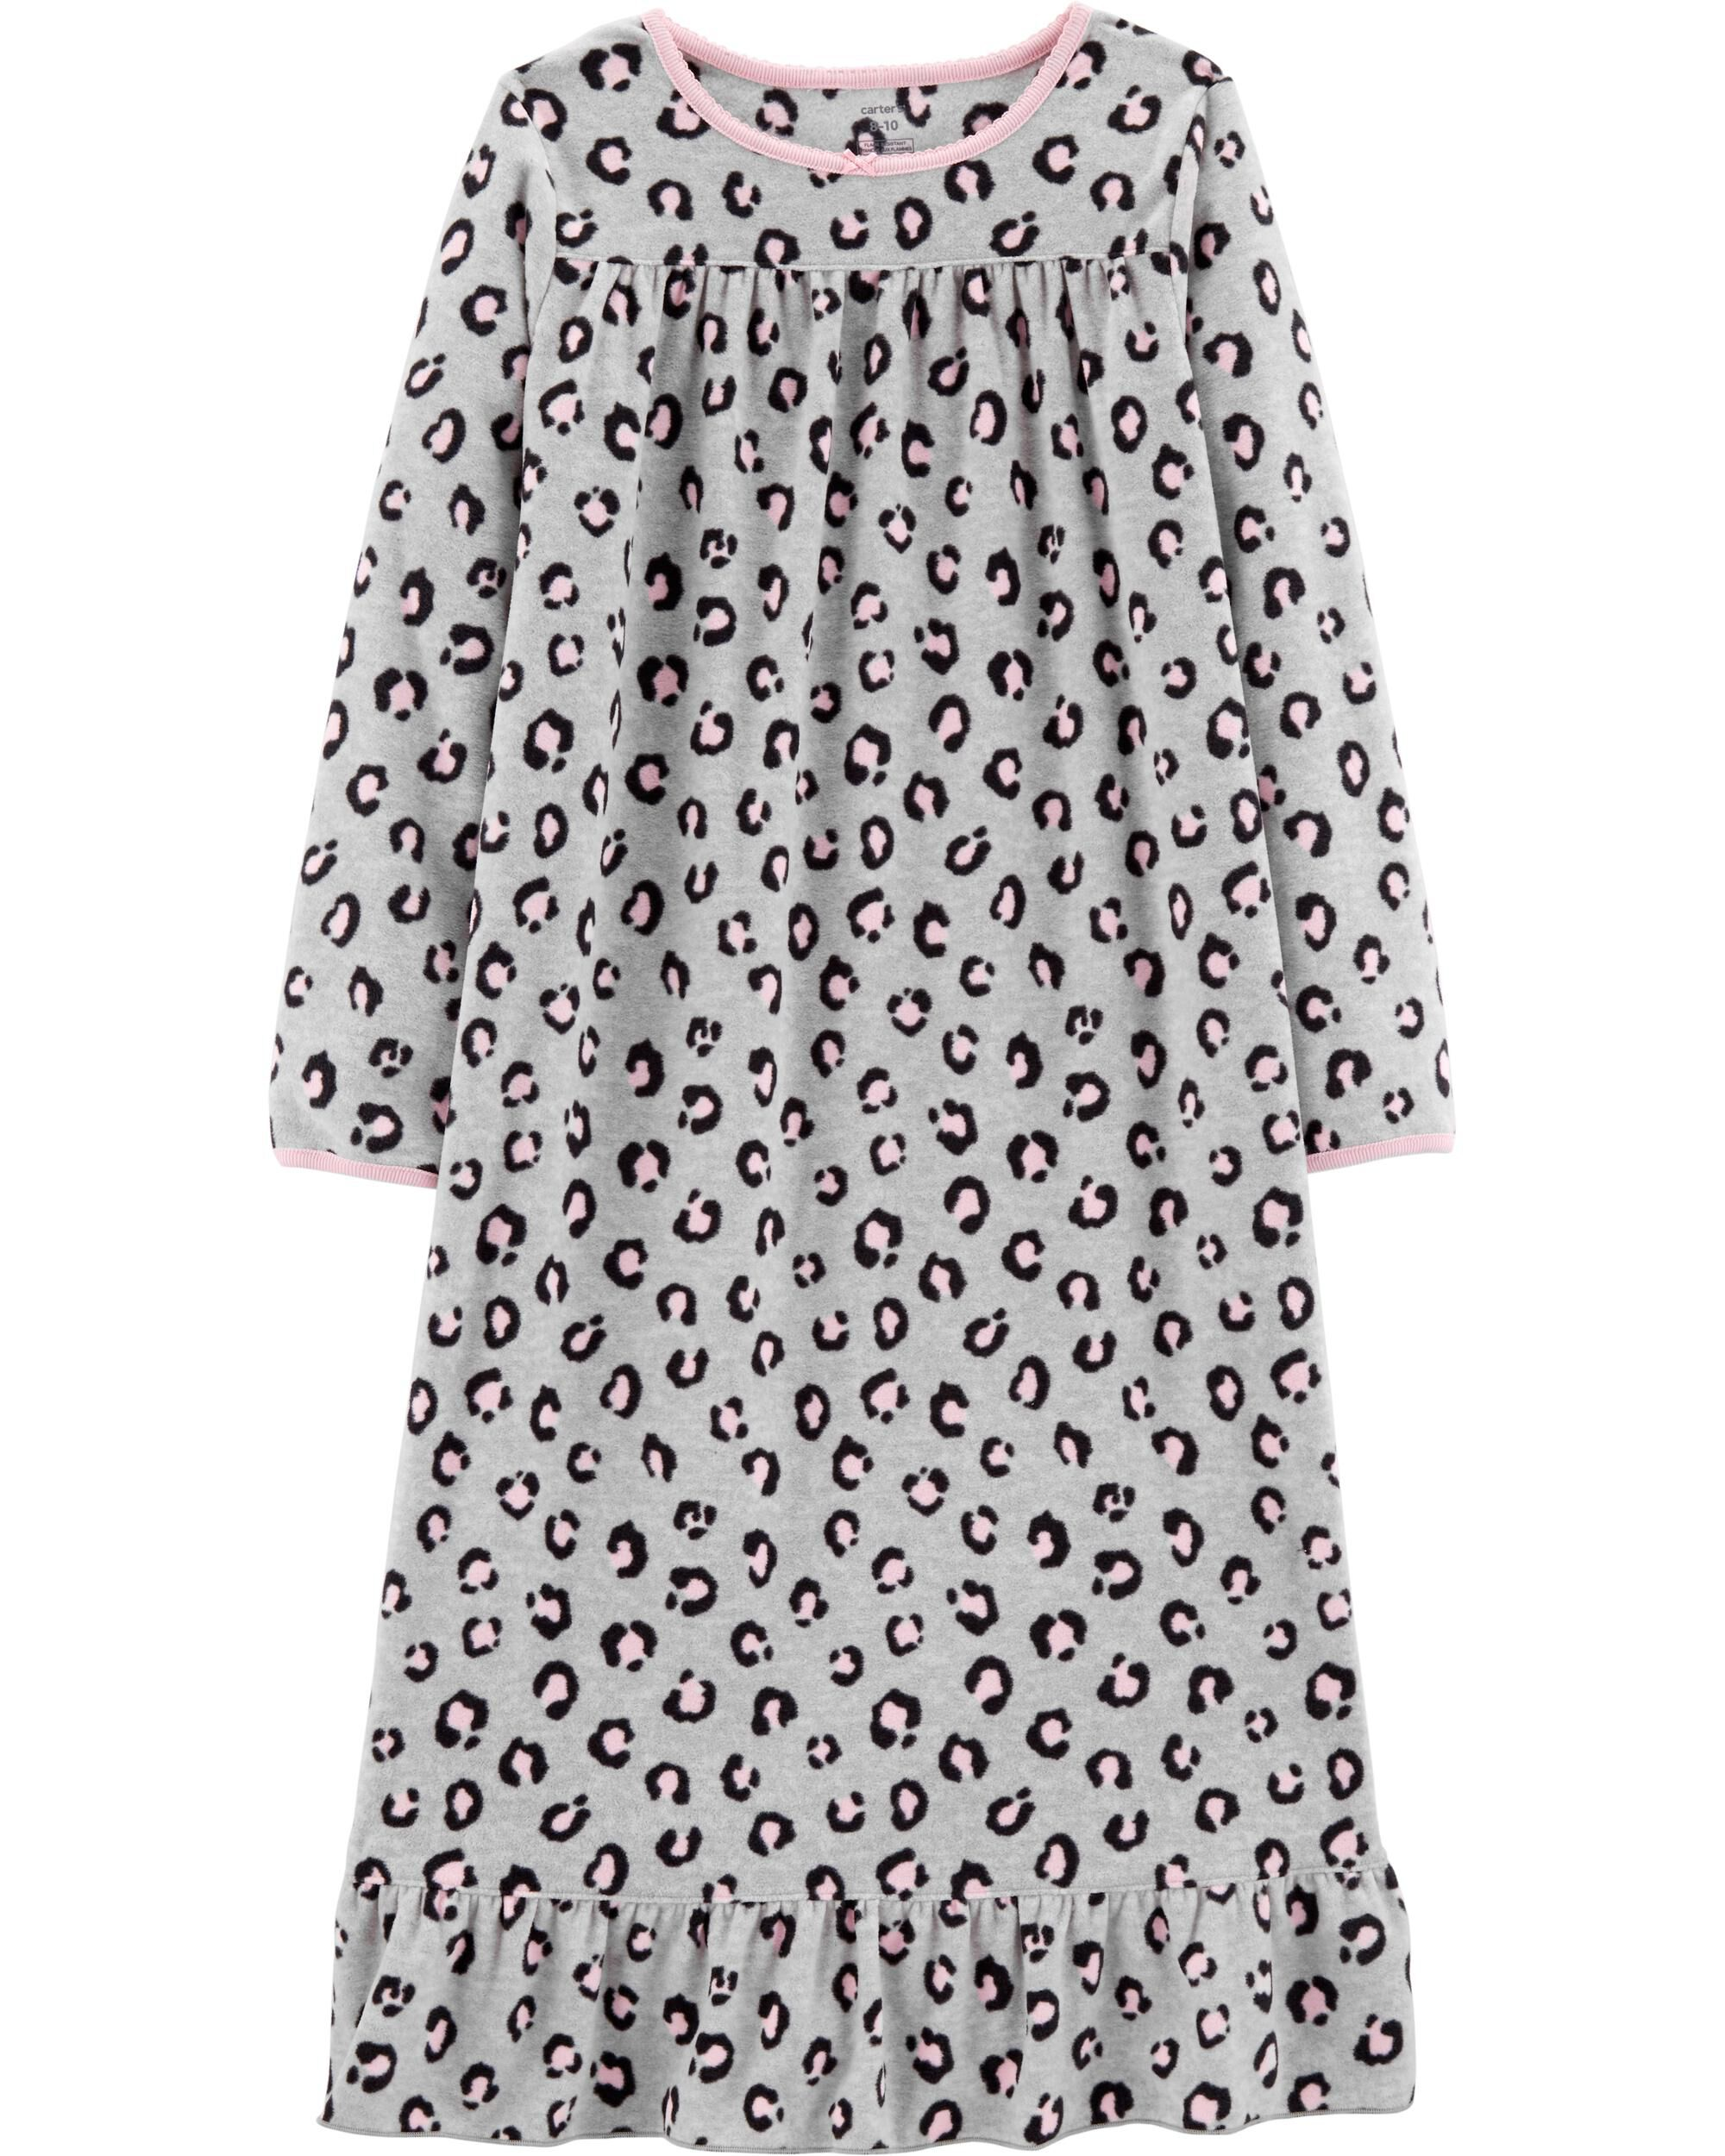 Cheetah Fleece Sleep Gown | Carters.com